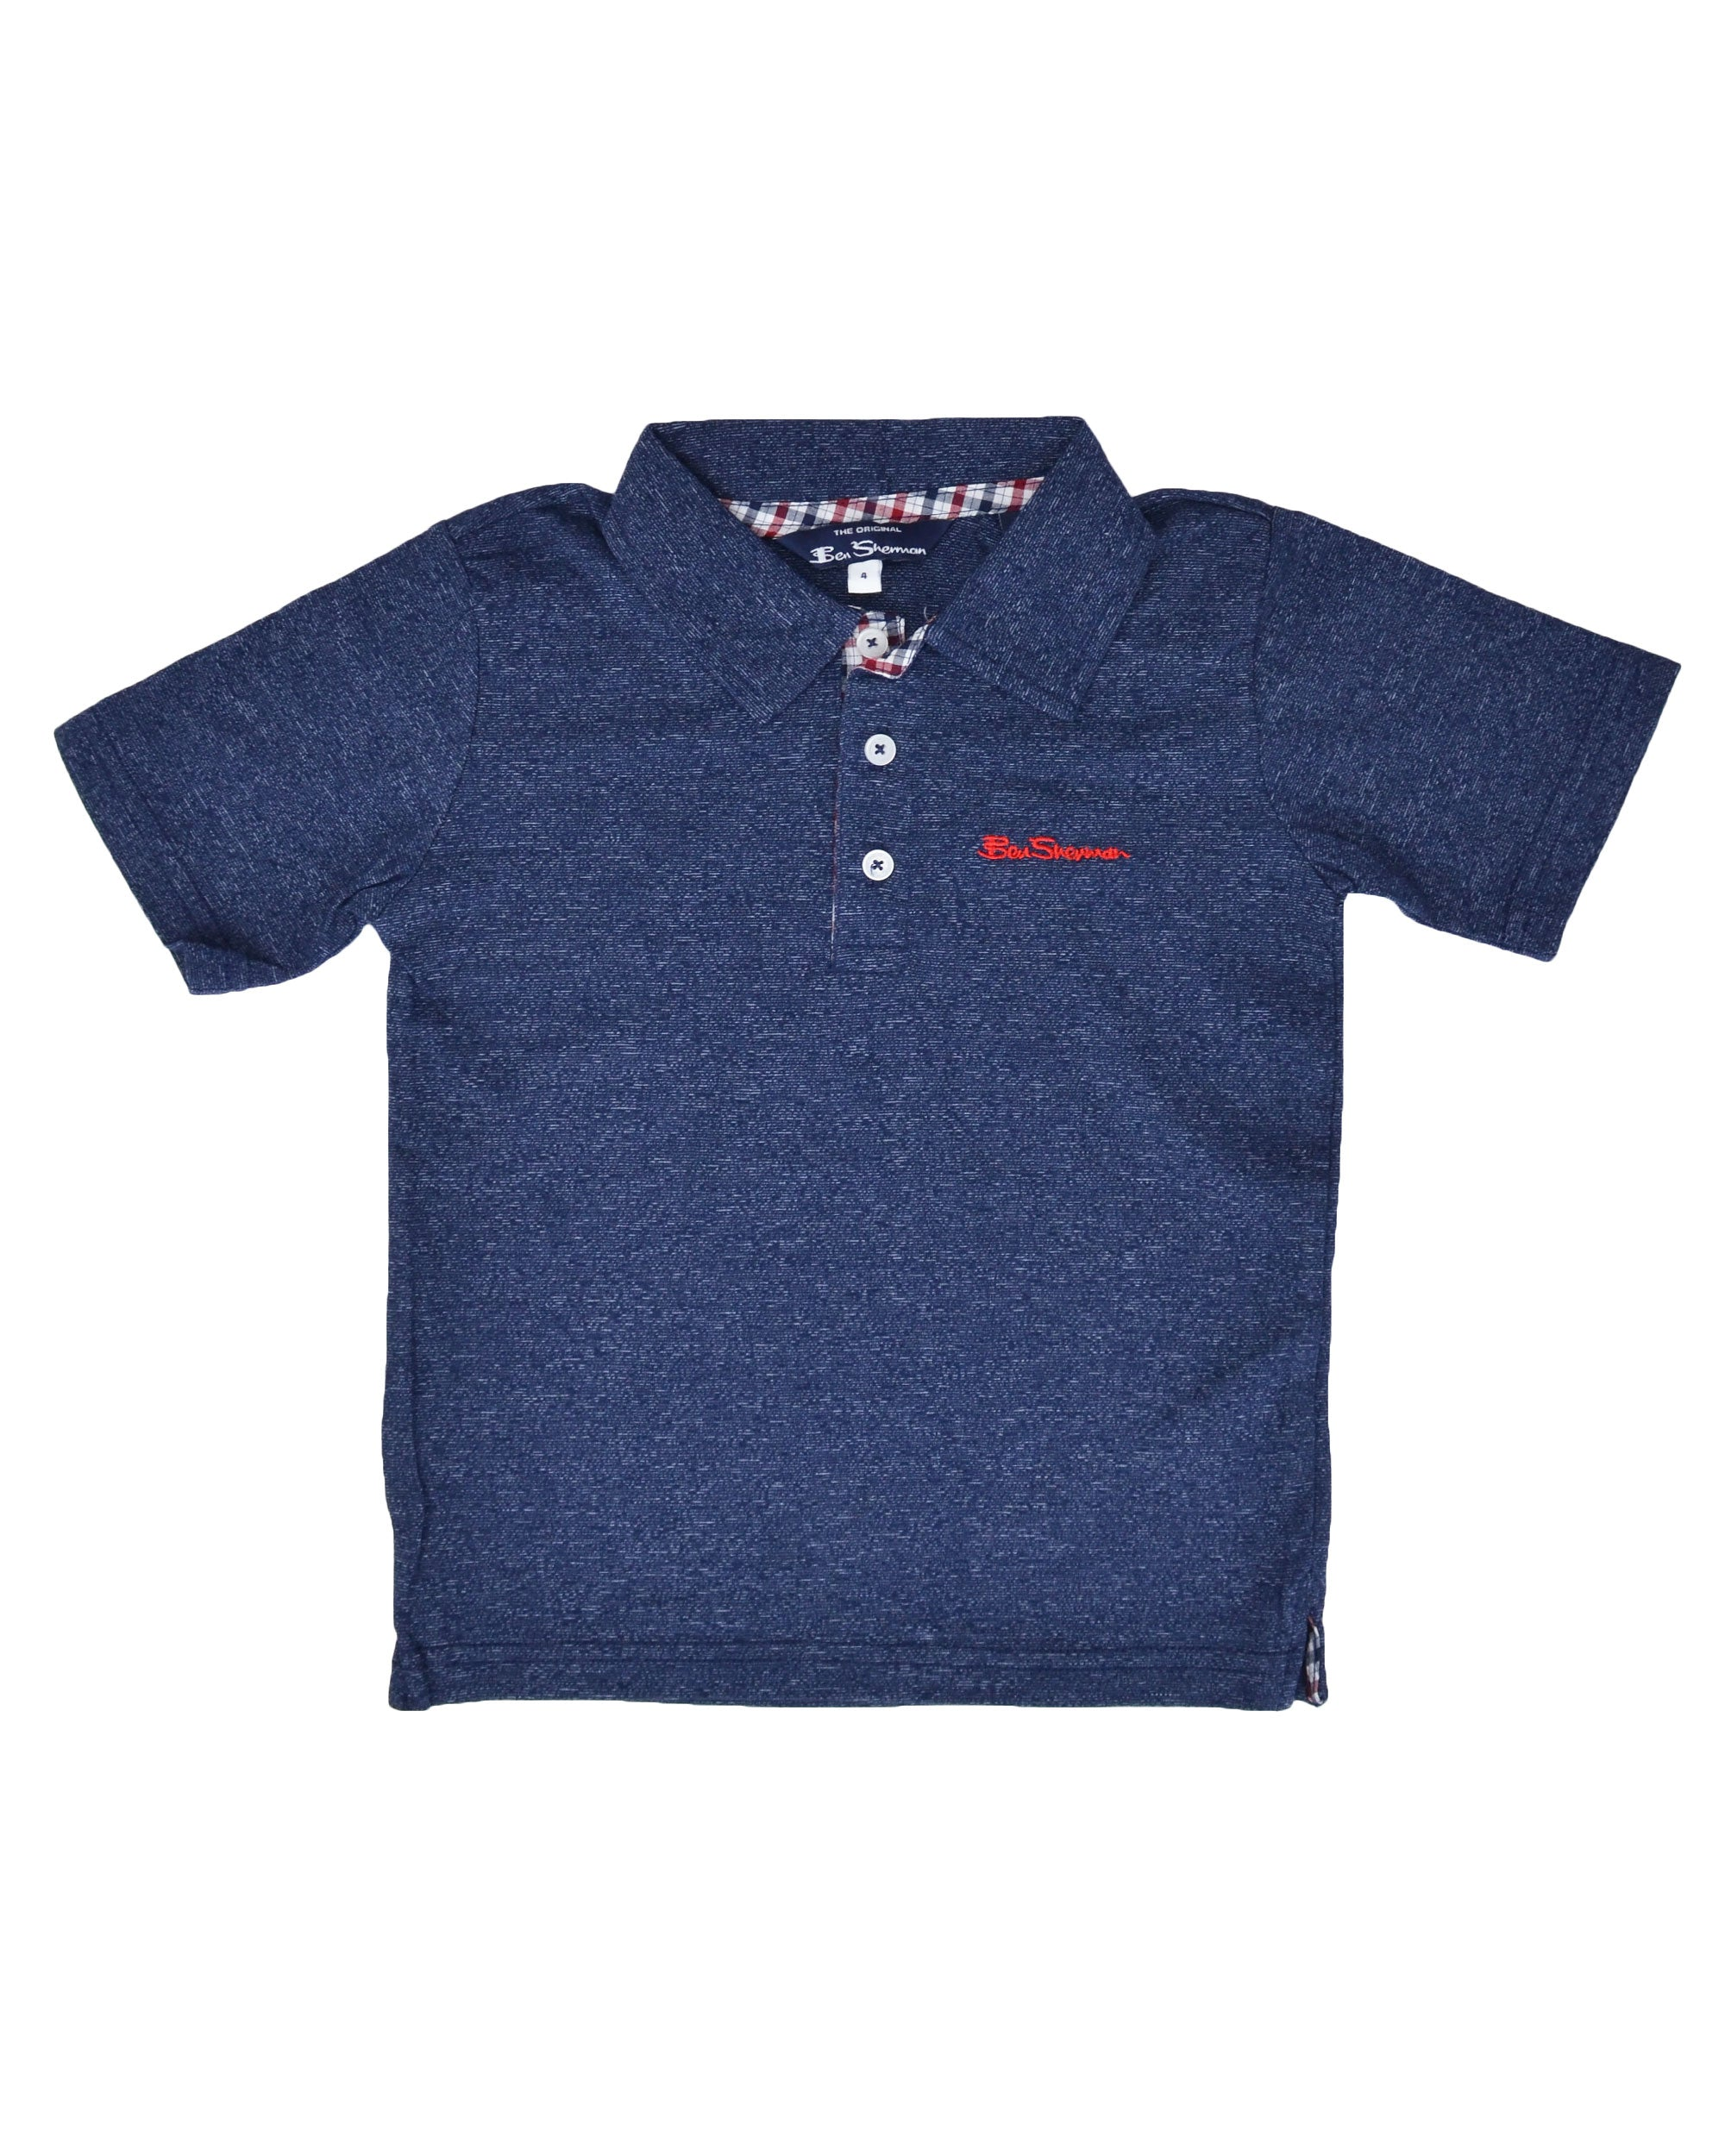 Boys' Short-Sleeve Polo Shirt - Navy (Sizes 4-7)